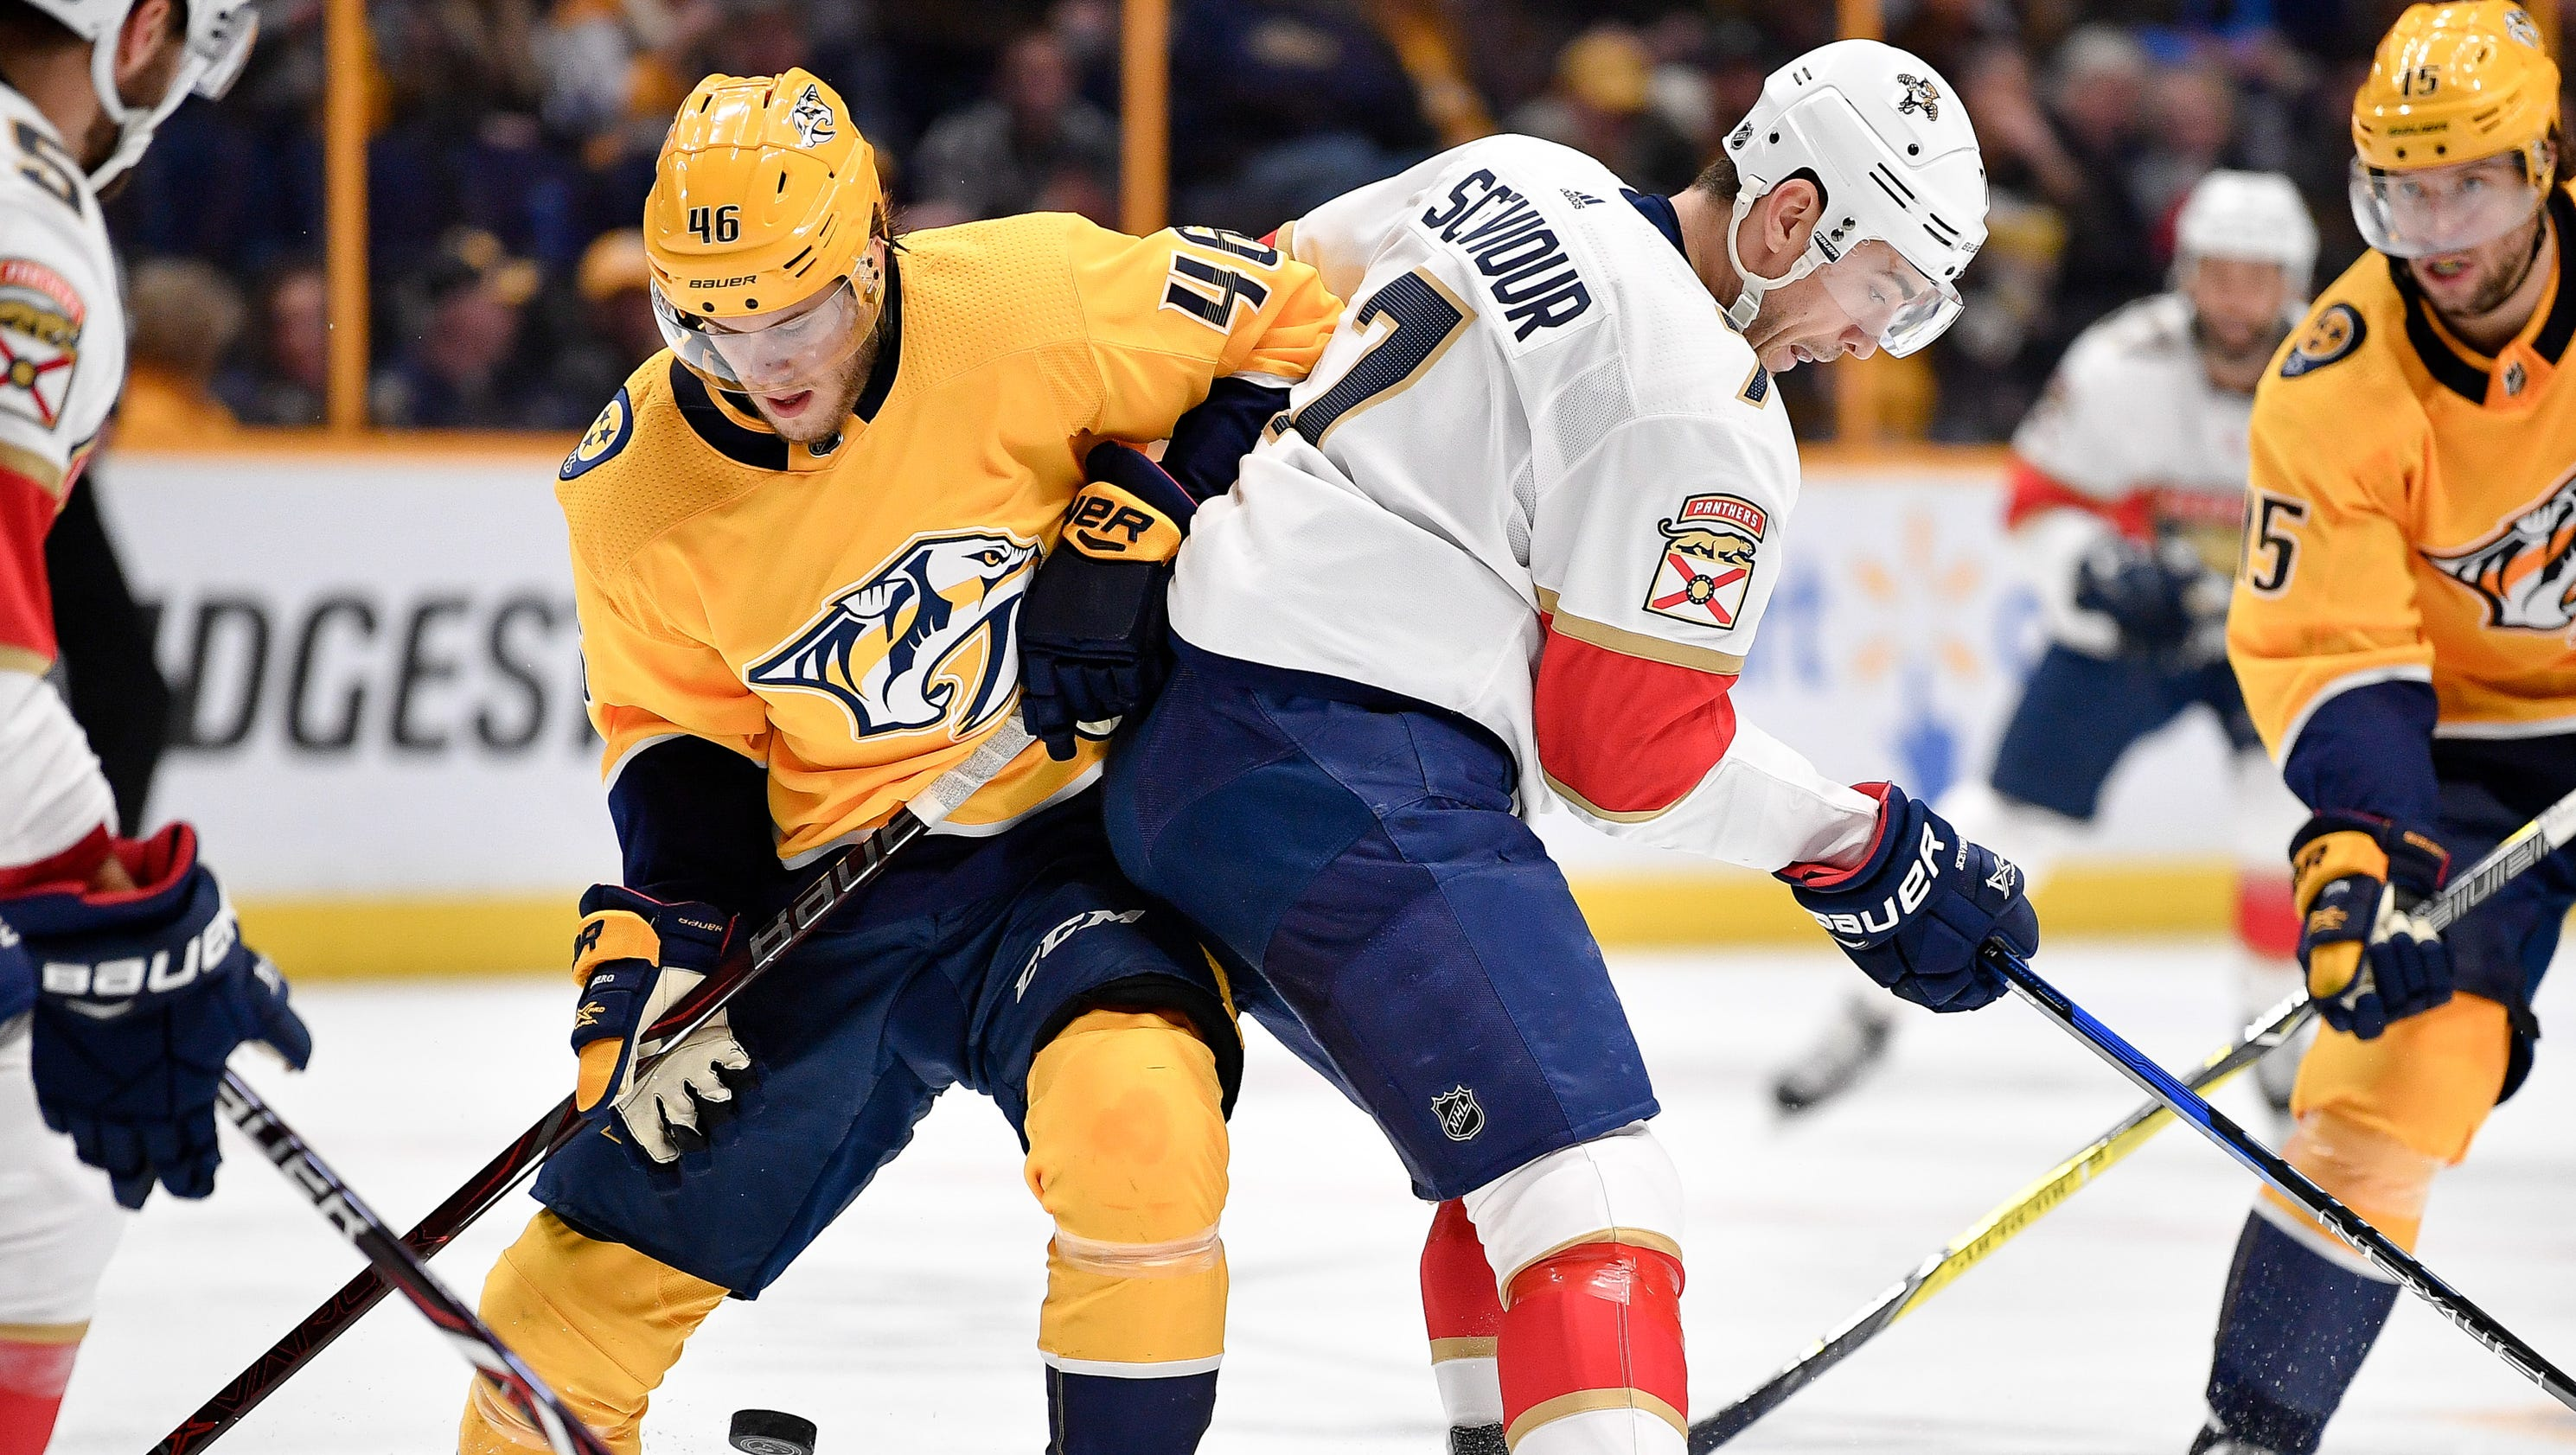 636520853701003091-preds-panthers-an-19